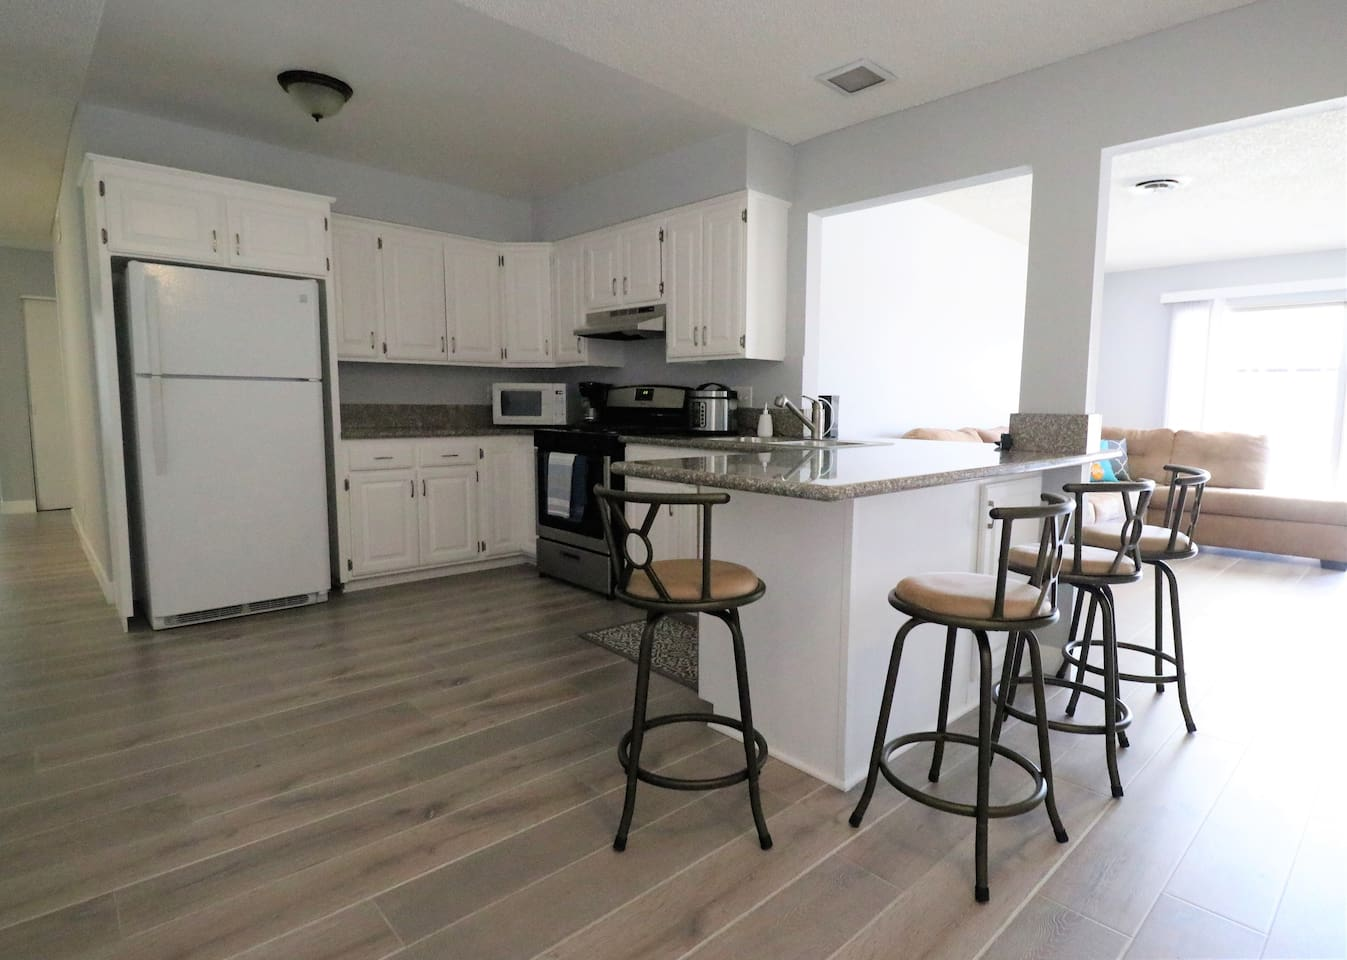 Shared kitchen space, with coffee maker, pressure cooker, microwave, stove, fridge, etc.